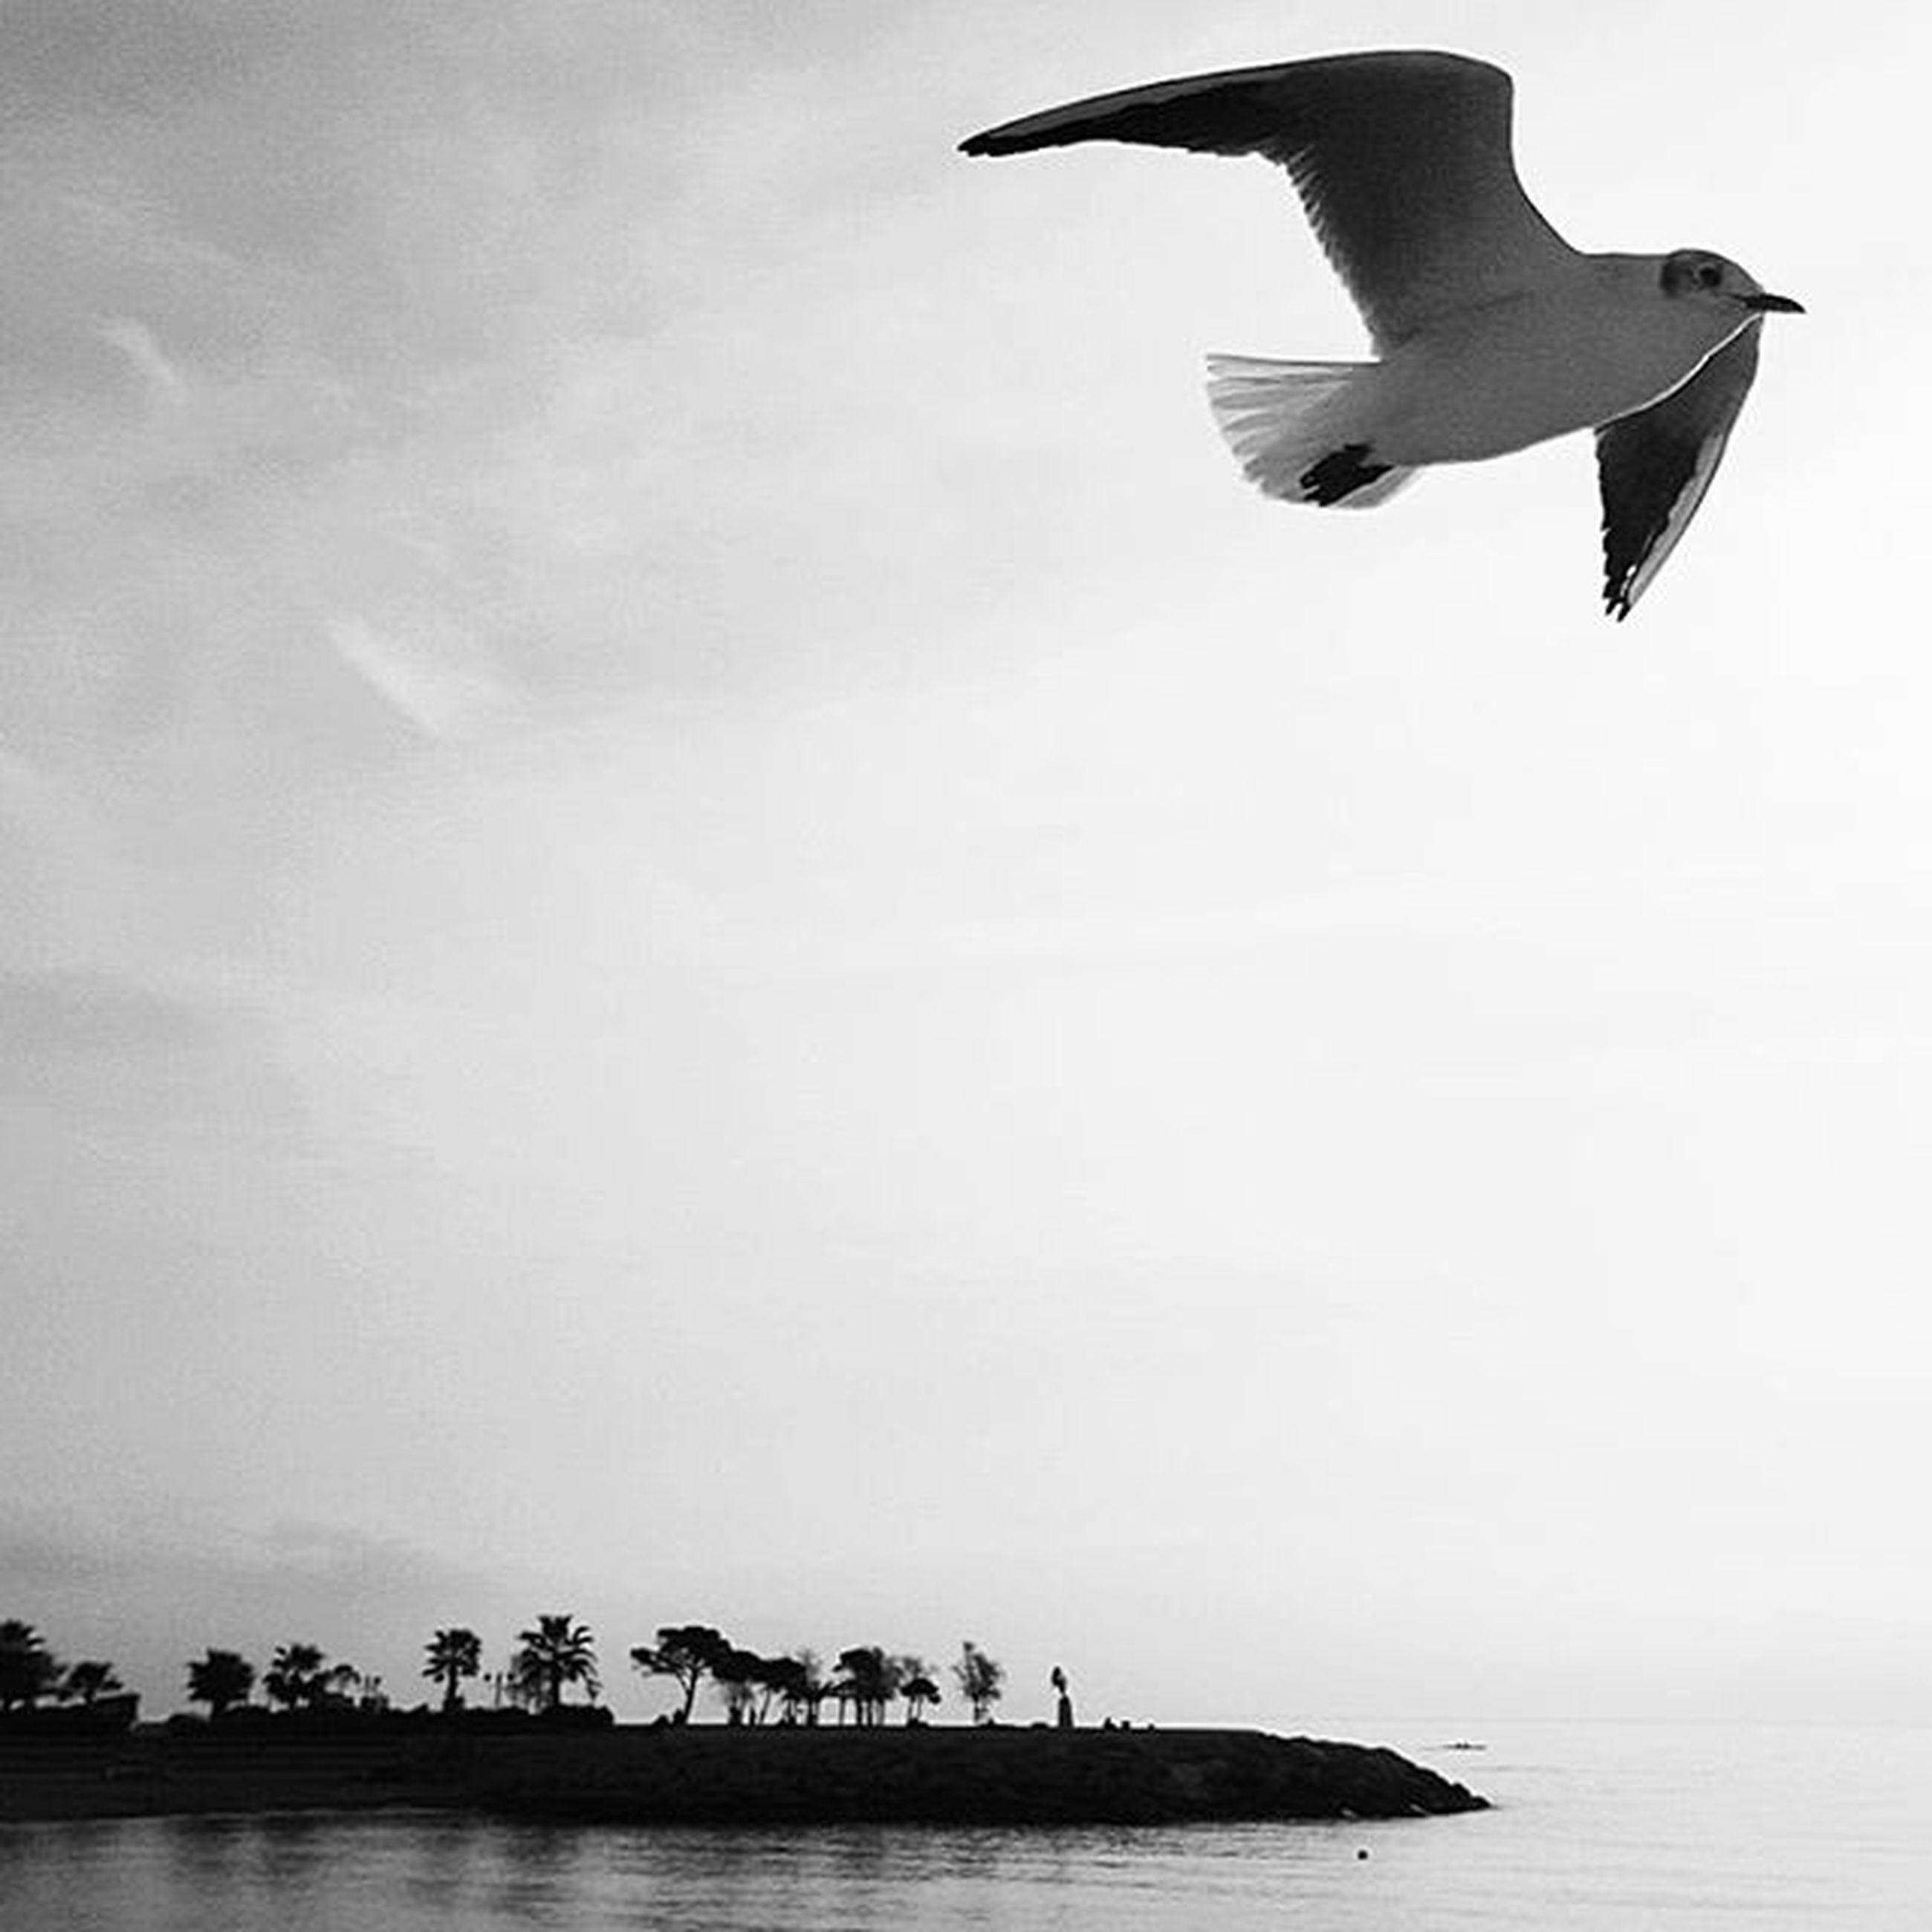 flying, water, sea, mid-air, sky, bird, transportation, clear sky, mode of transport, spread wings, low angle view, waterfront, nature, copy space, horizon over water, travel, day, animal themes, seagull, outdoors